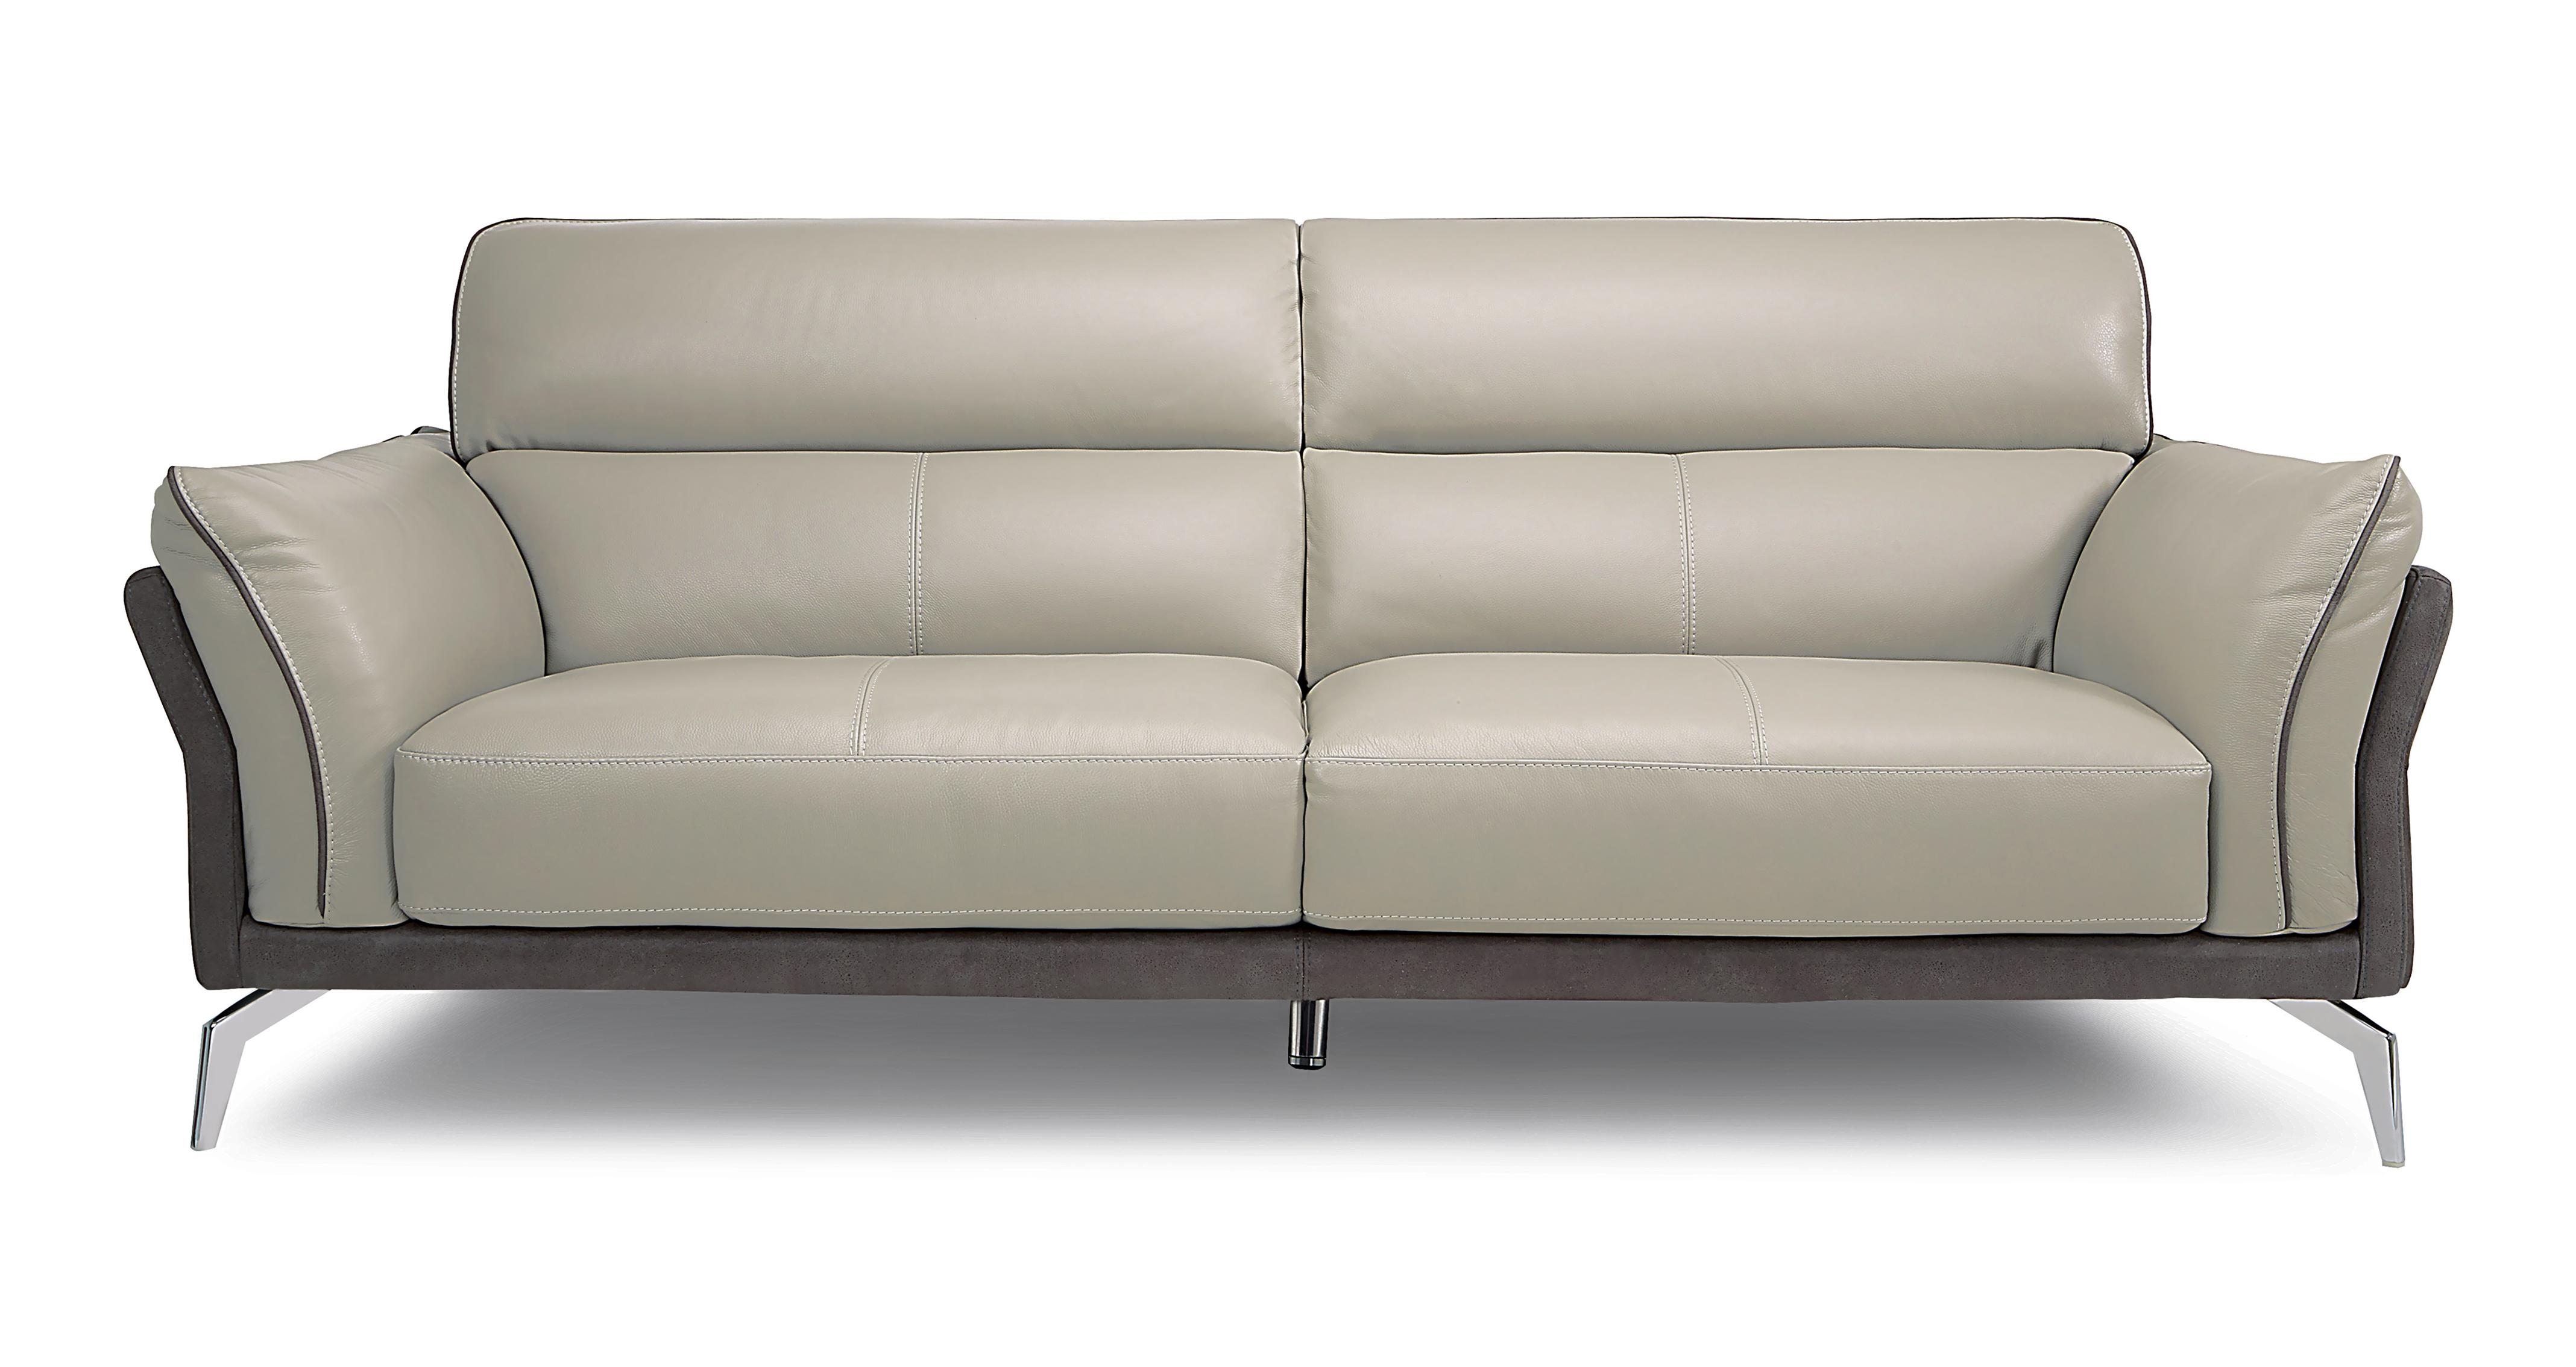 new sofas dfs pottery barn on sale valdez 3 seater sofa club